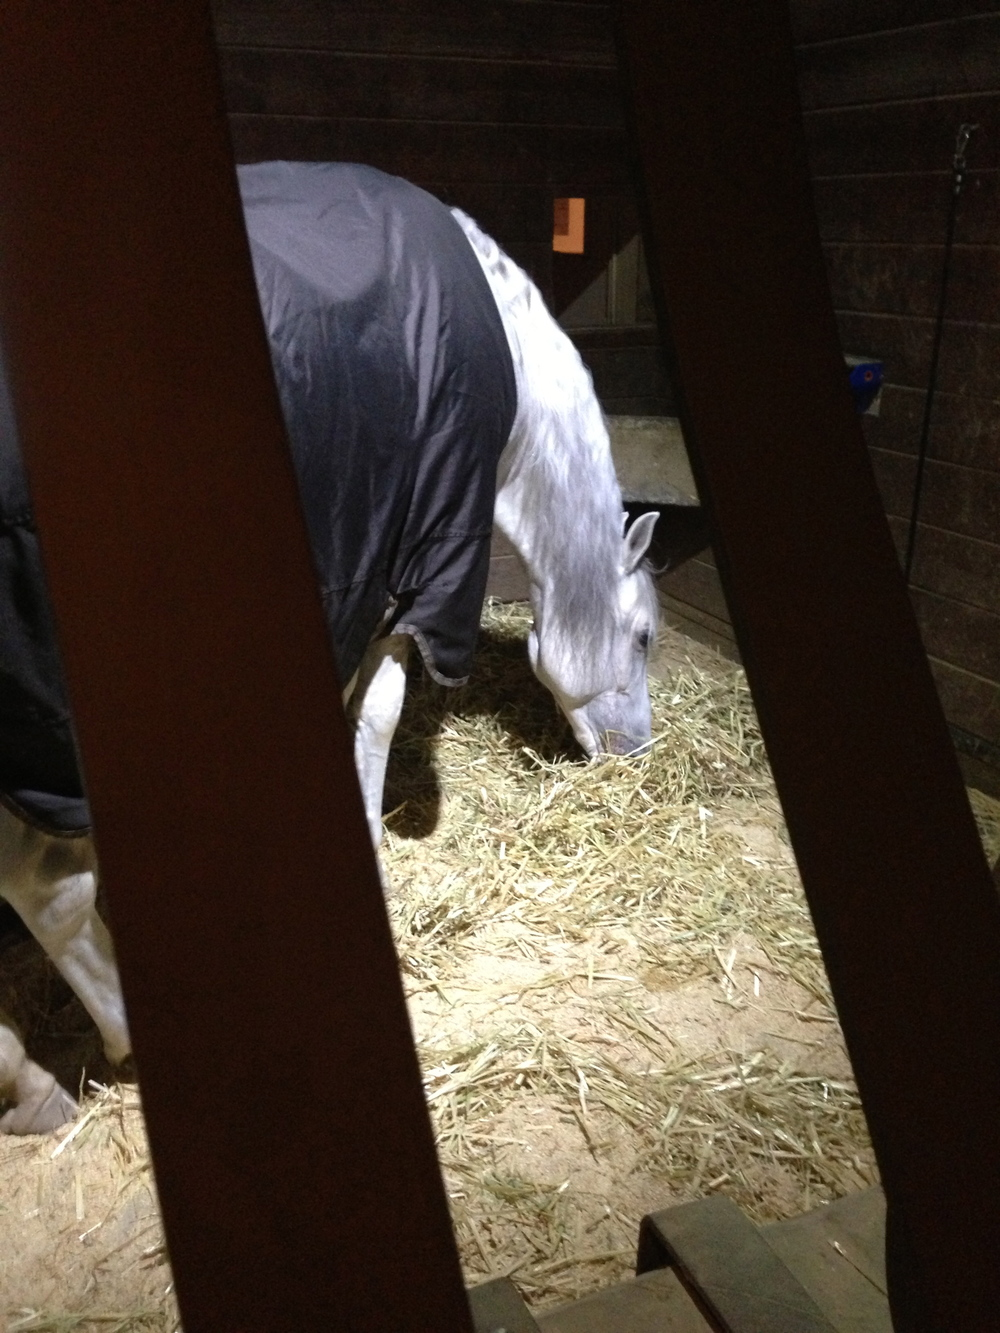 A horse in a blanket, settling in after the performance.